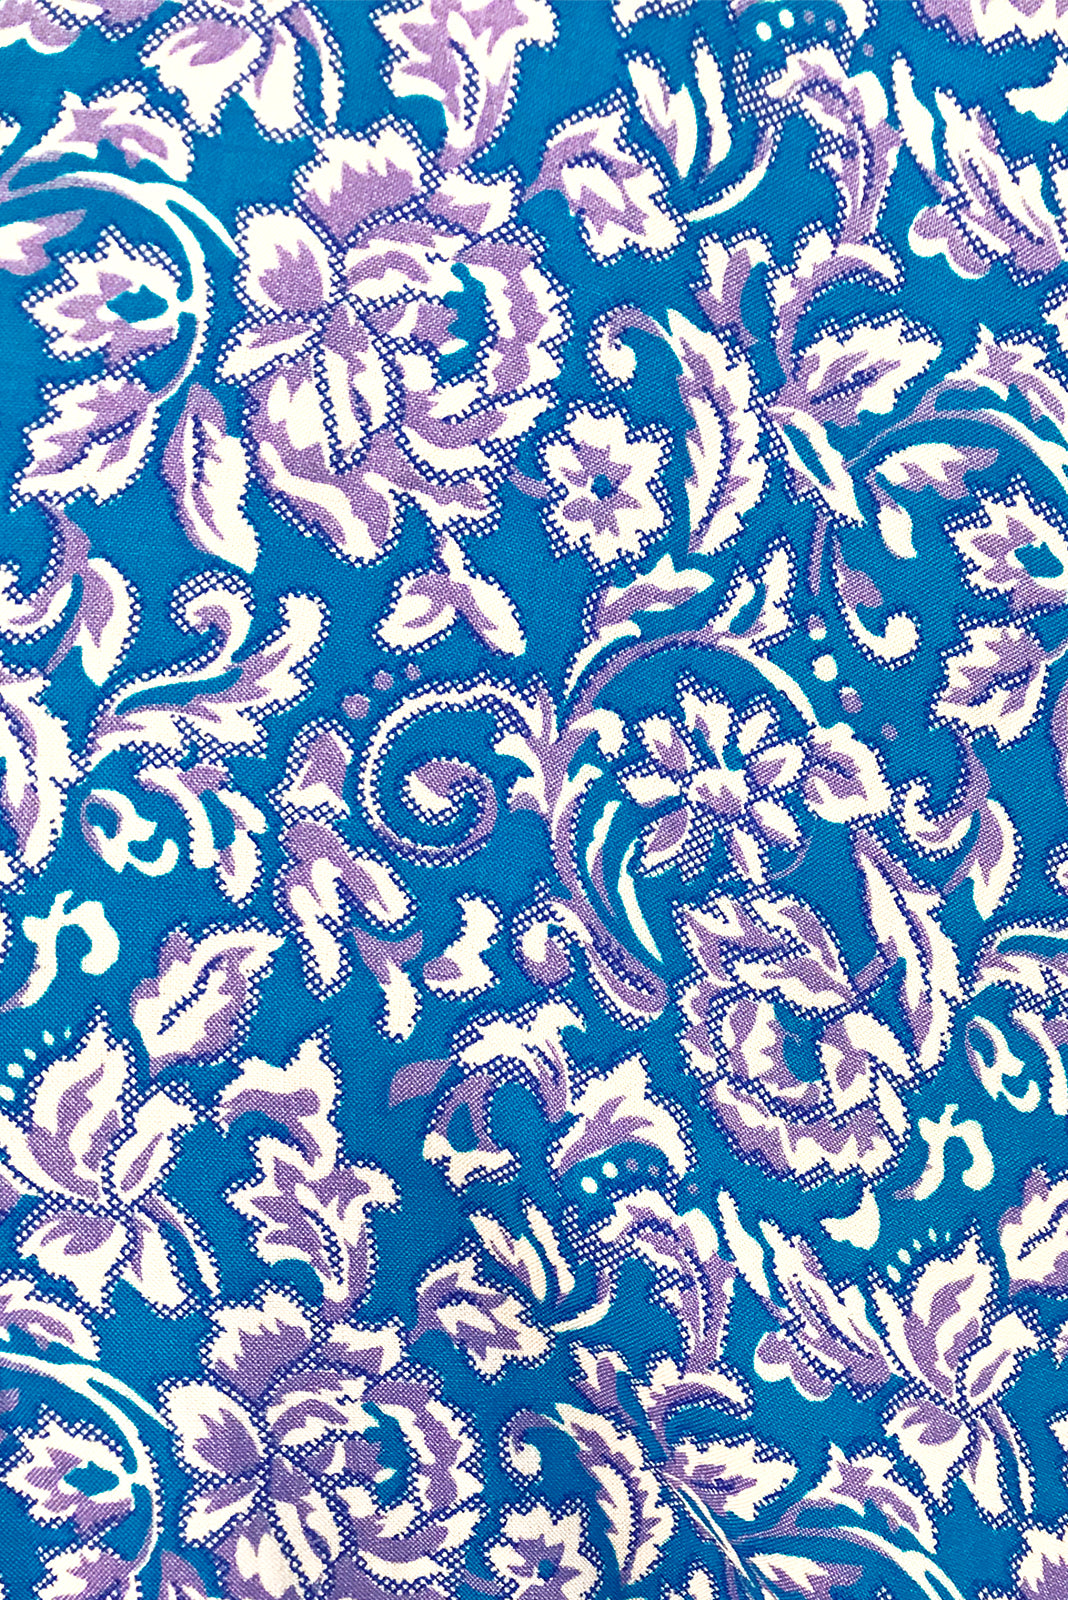 Fabric Swatch of Adoro Turquoise Fleur Maxi Dress featuring 100% rayon in blue base with white and purple floral print.